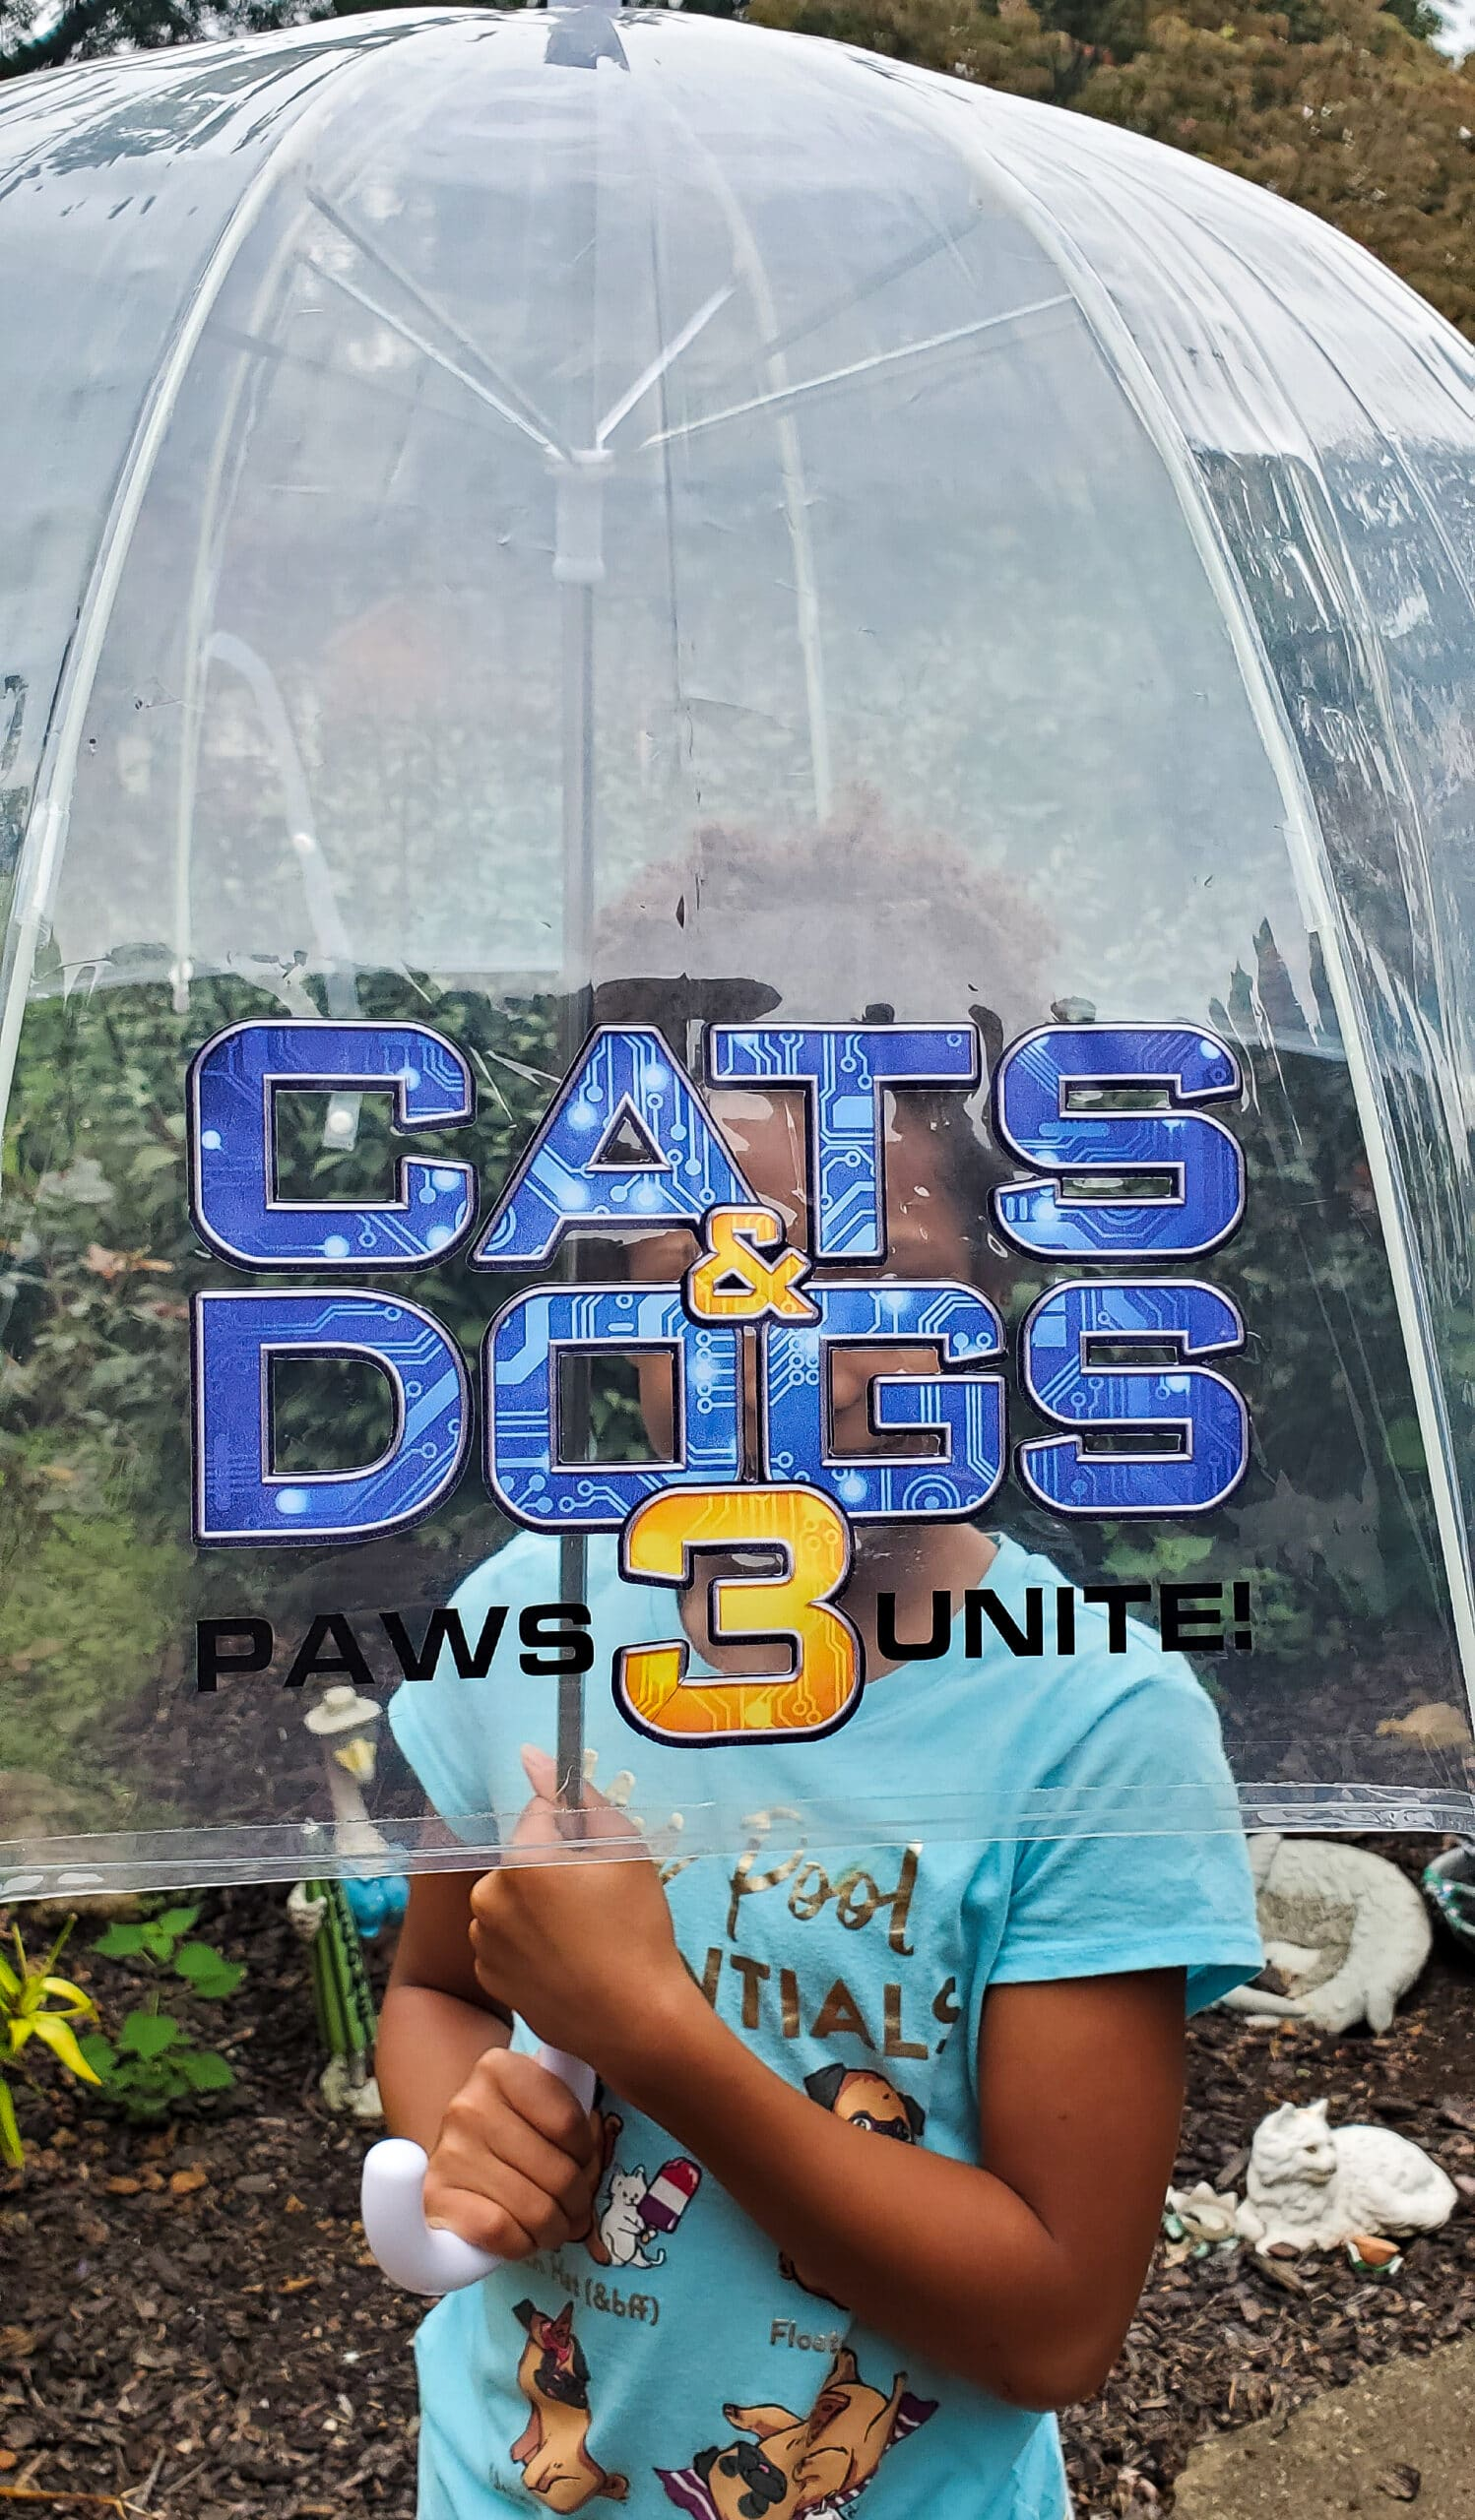 Cats and Dogs 3: Paws Unite! Umbrella. Discover who has the upper paw in Cats & Dogs 3: Paws Unite!, the next feature-length installment of the popular Cats & Dogs franchise from Warner Bros. Home Entertainment. Available on Digital on September 15 and on both Blu-ray Combo Pack and DVD on October 13.